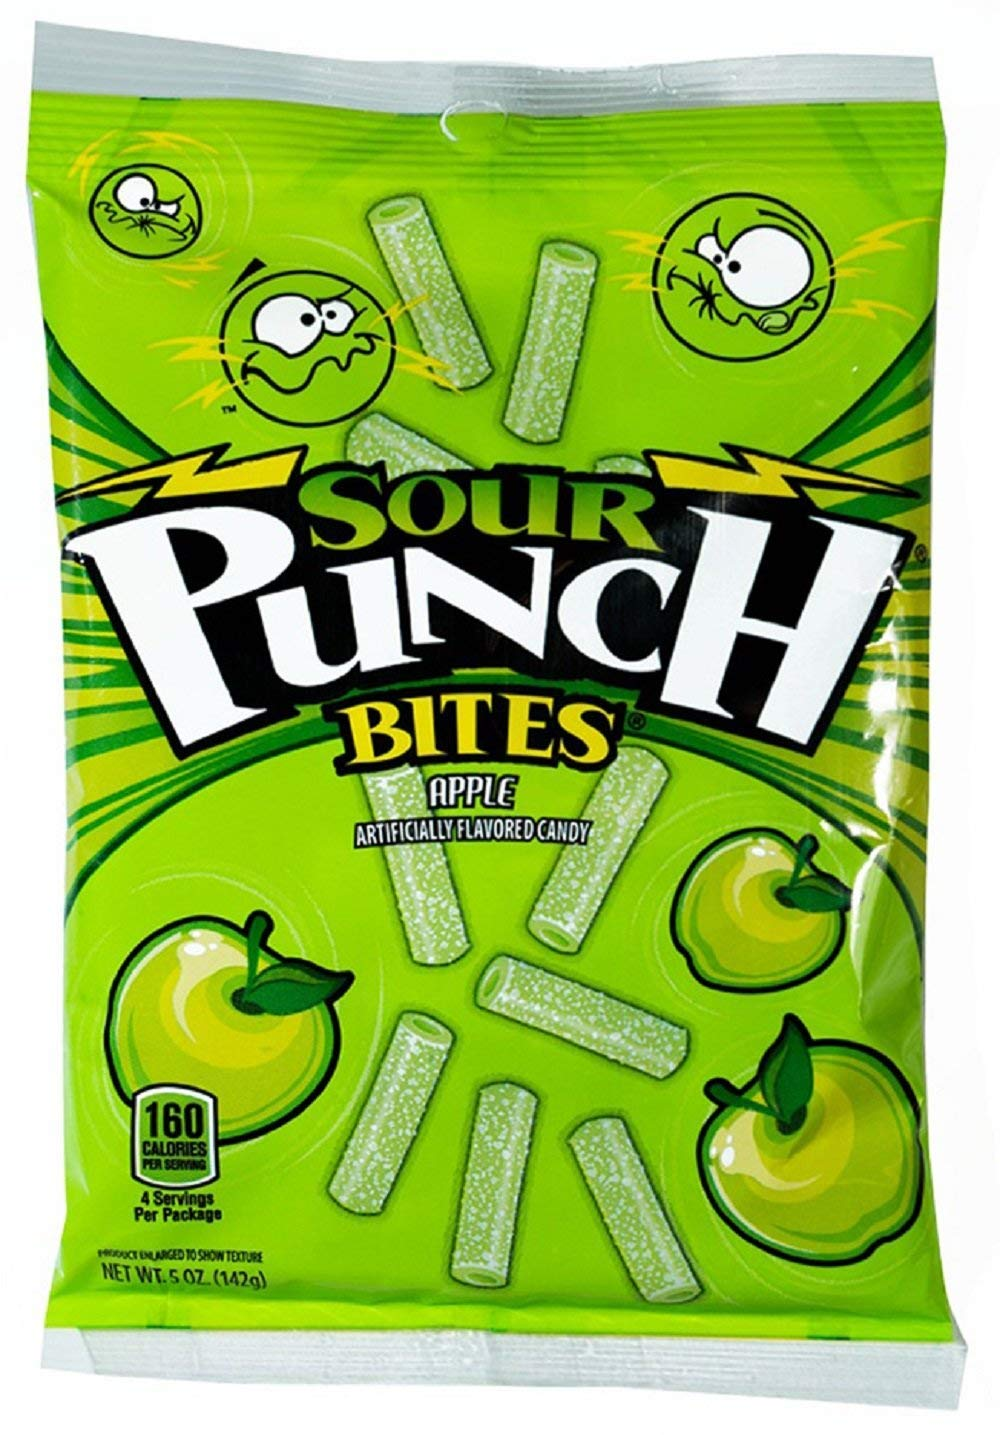 Sour Punch Bites, Sour Apple Fruit Flavored Soft & Chewy Candy, 5oz Bag (12 Pack)